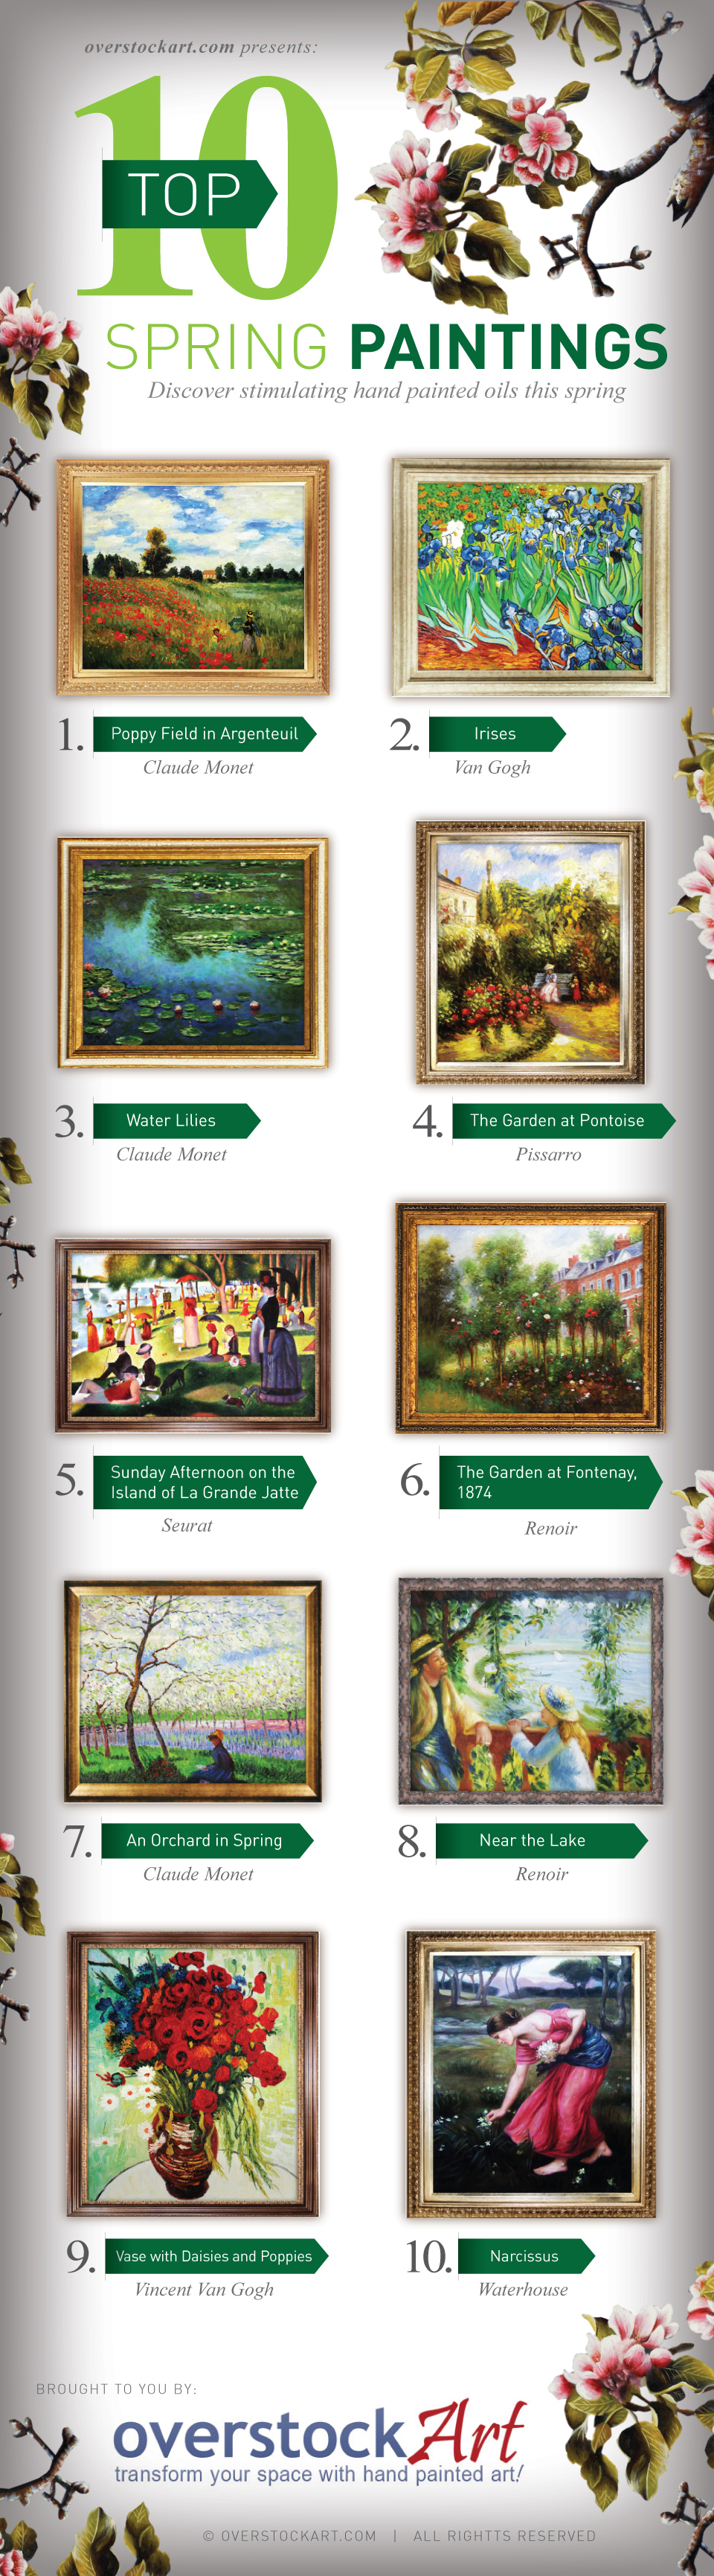 The Top Ten Oil Paintings for Spring 2014